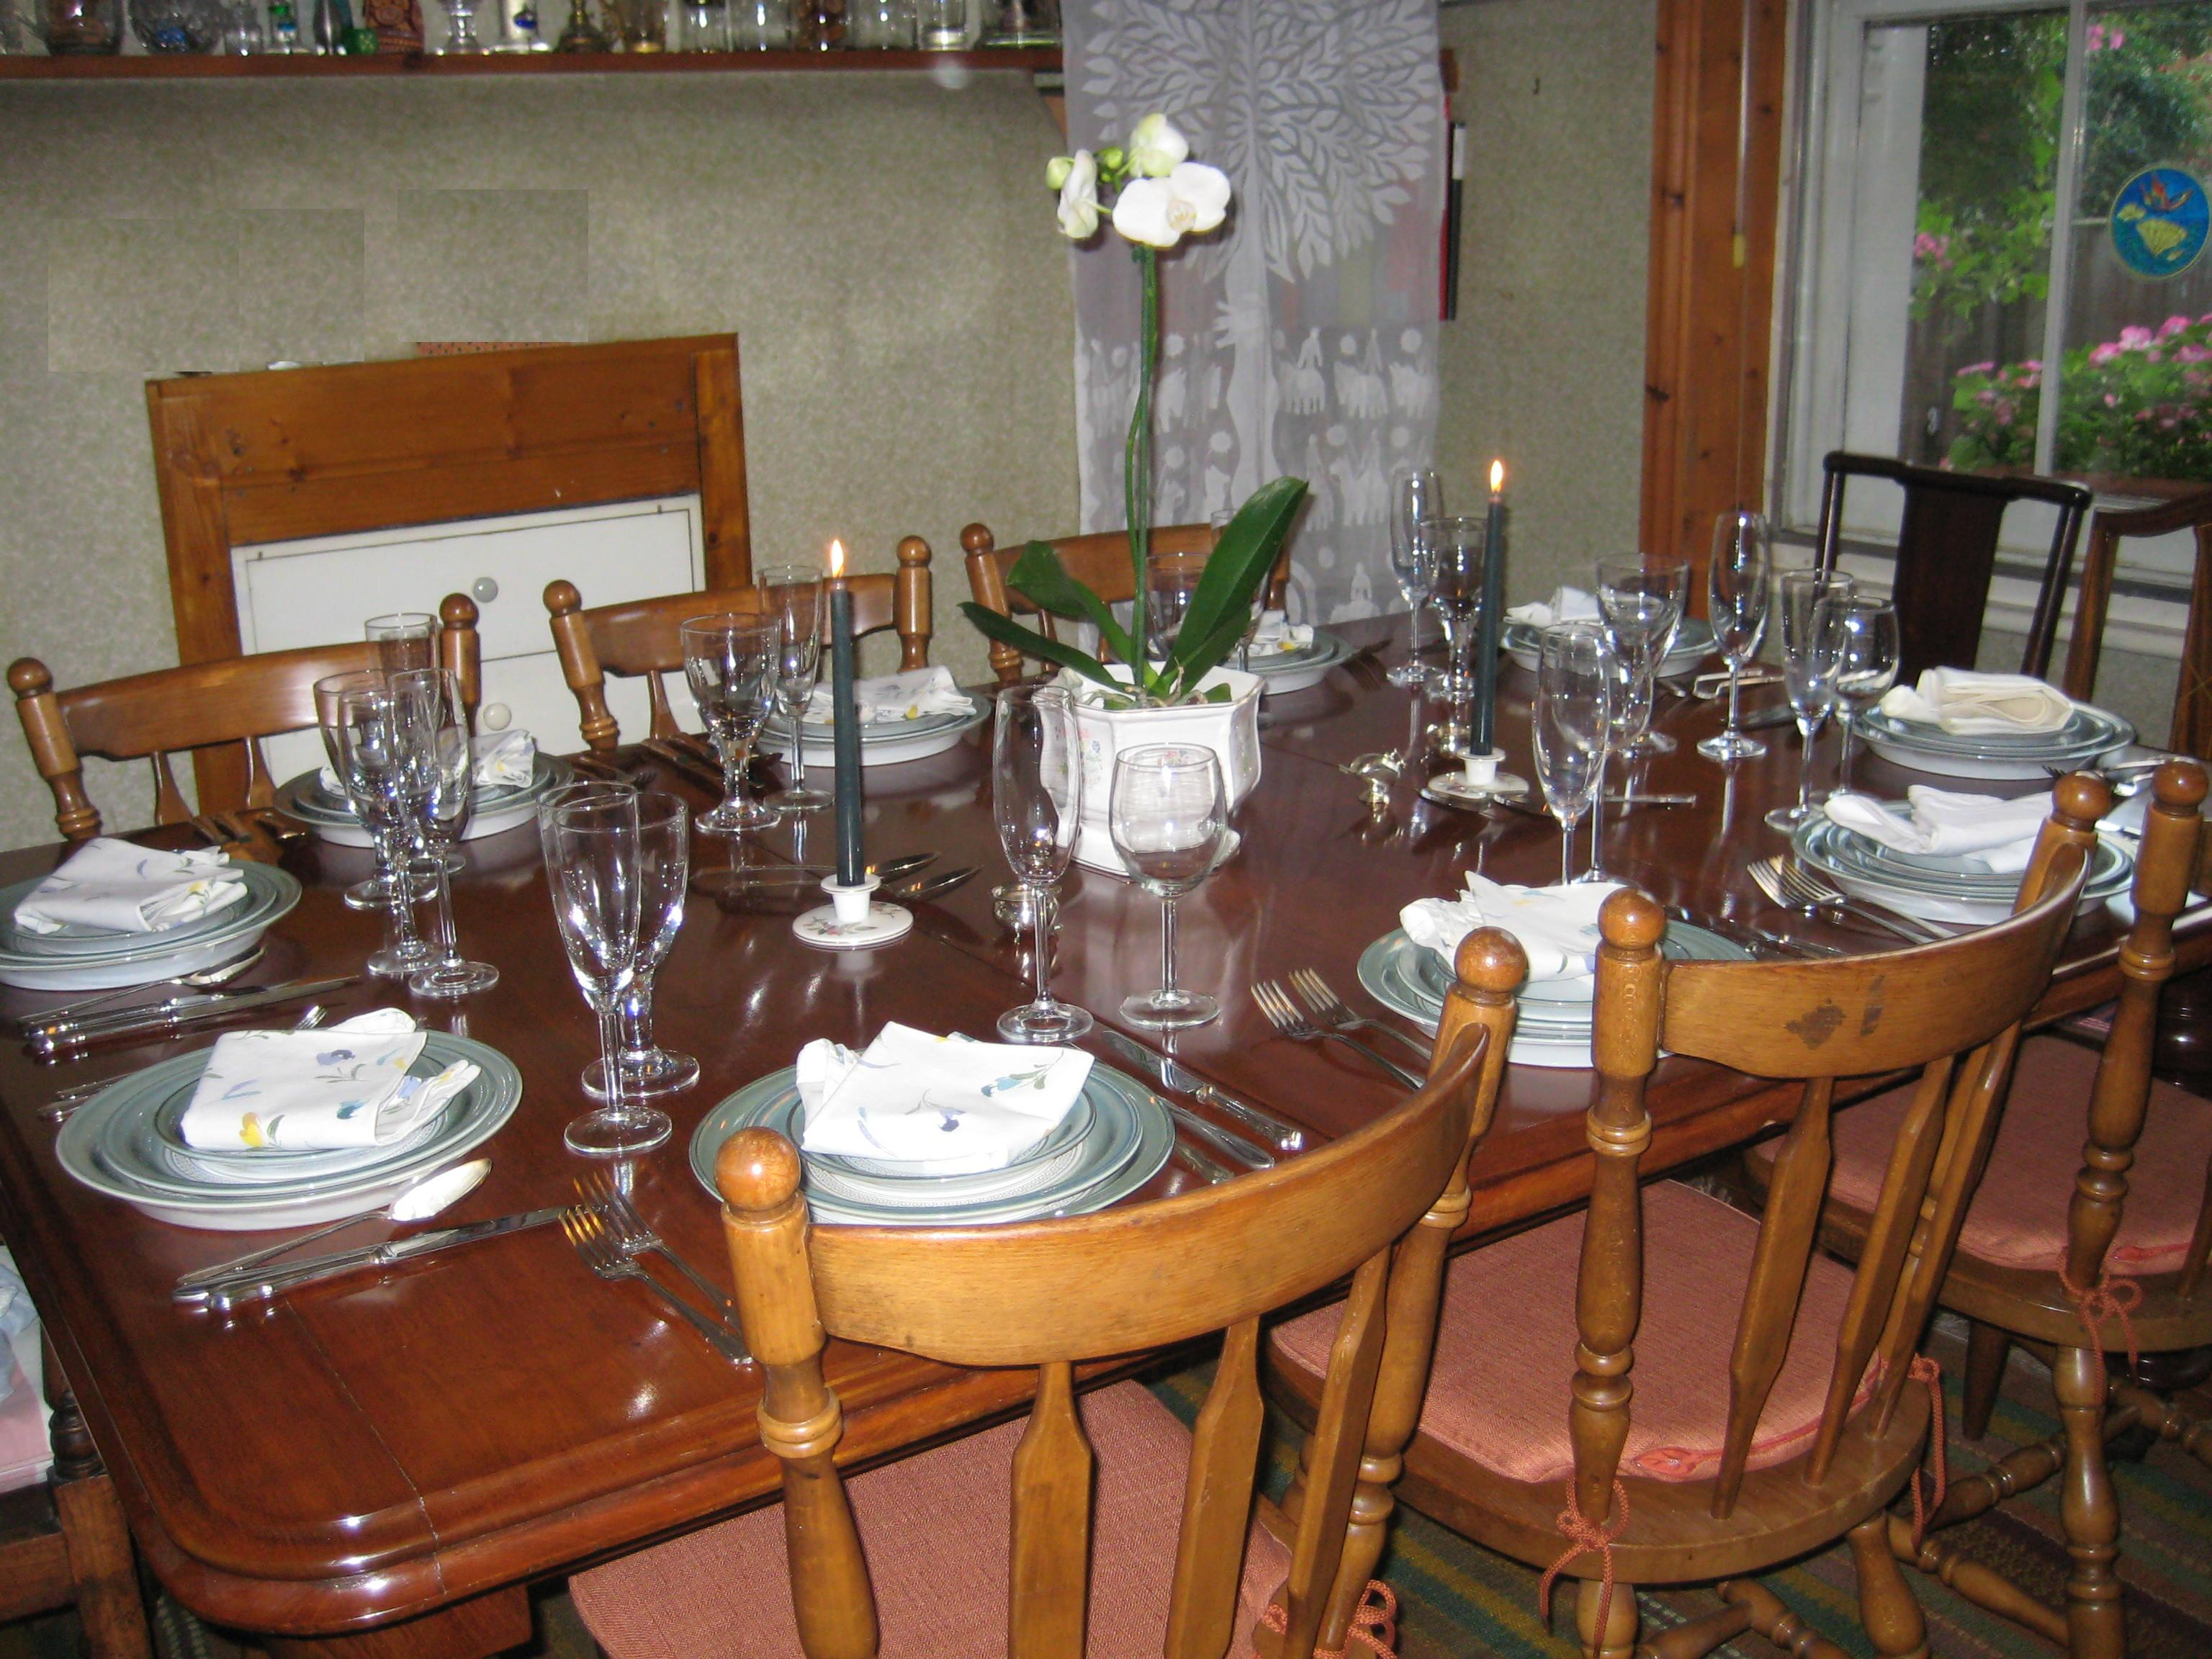 The large dining table was salvaged from a sale of furniture. It was going to be thrown on the skip because nobody wanted it!